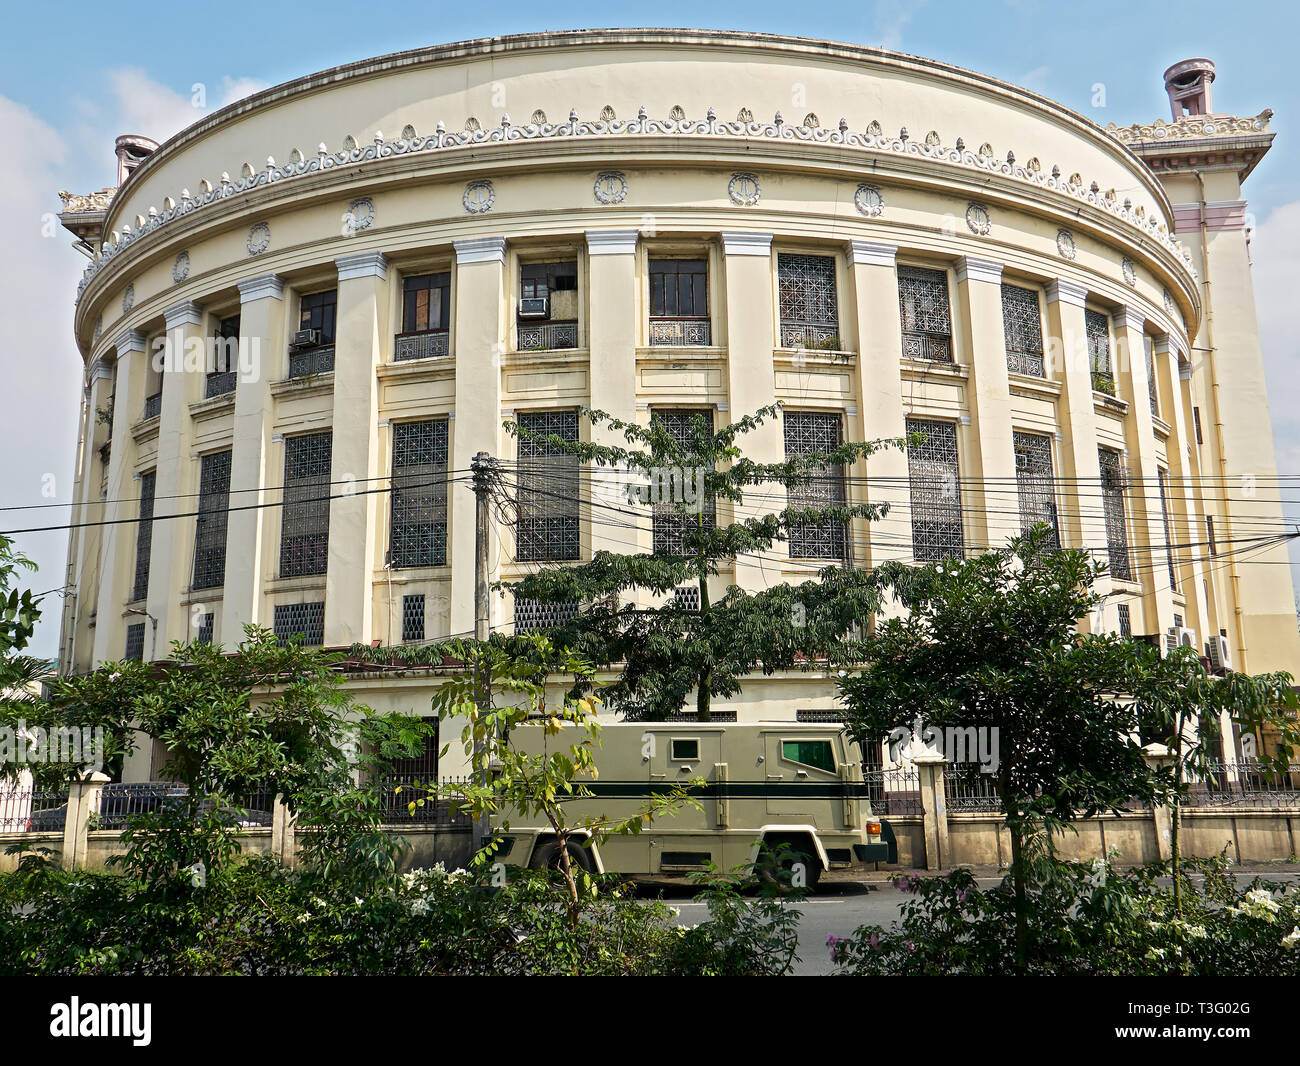 Manila, Philippines: Side view of the historical Central Post Office building near the Pasig River, with an armored car in front - Stock Image